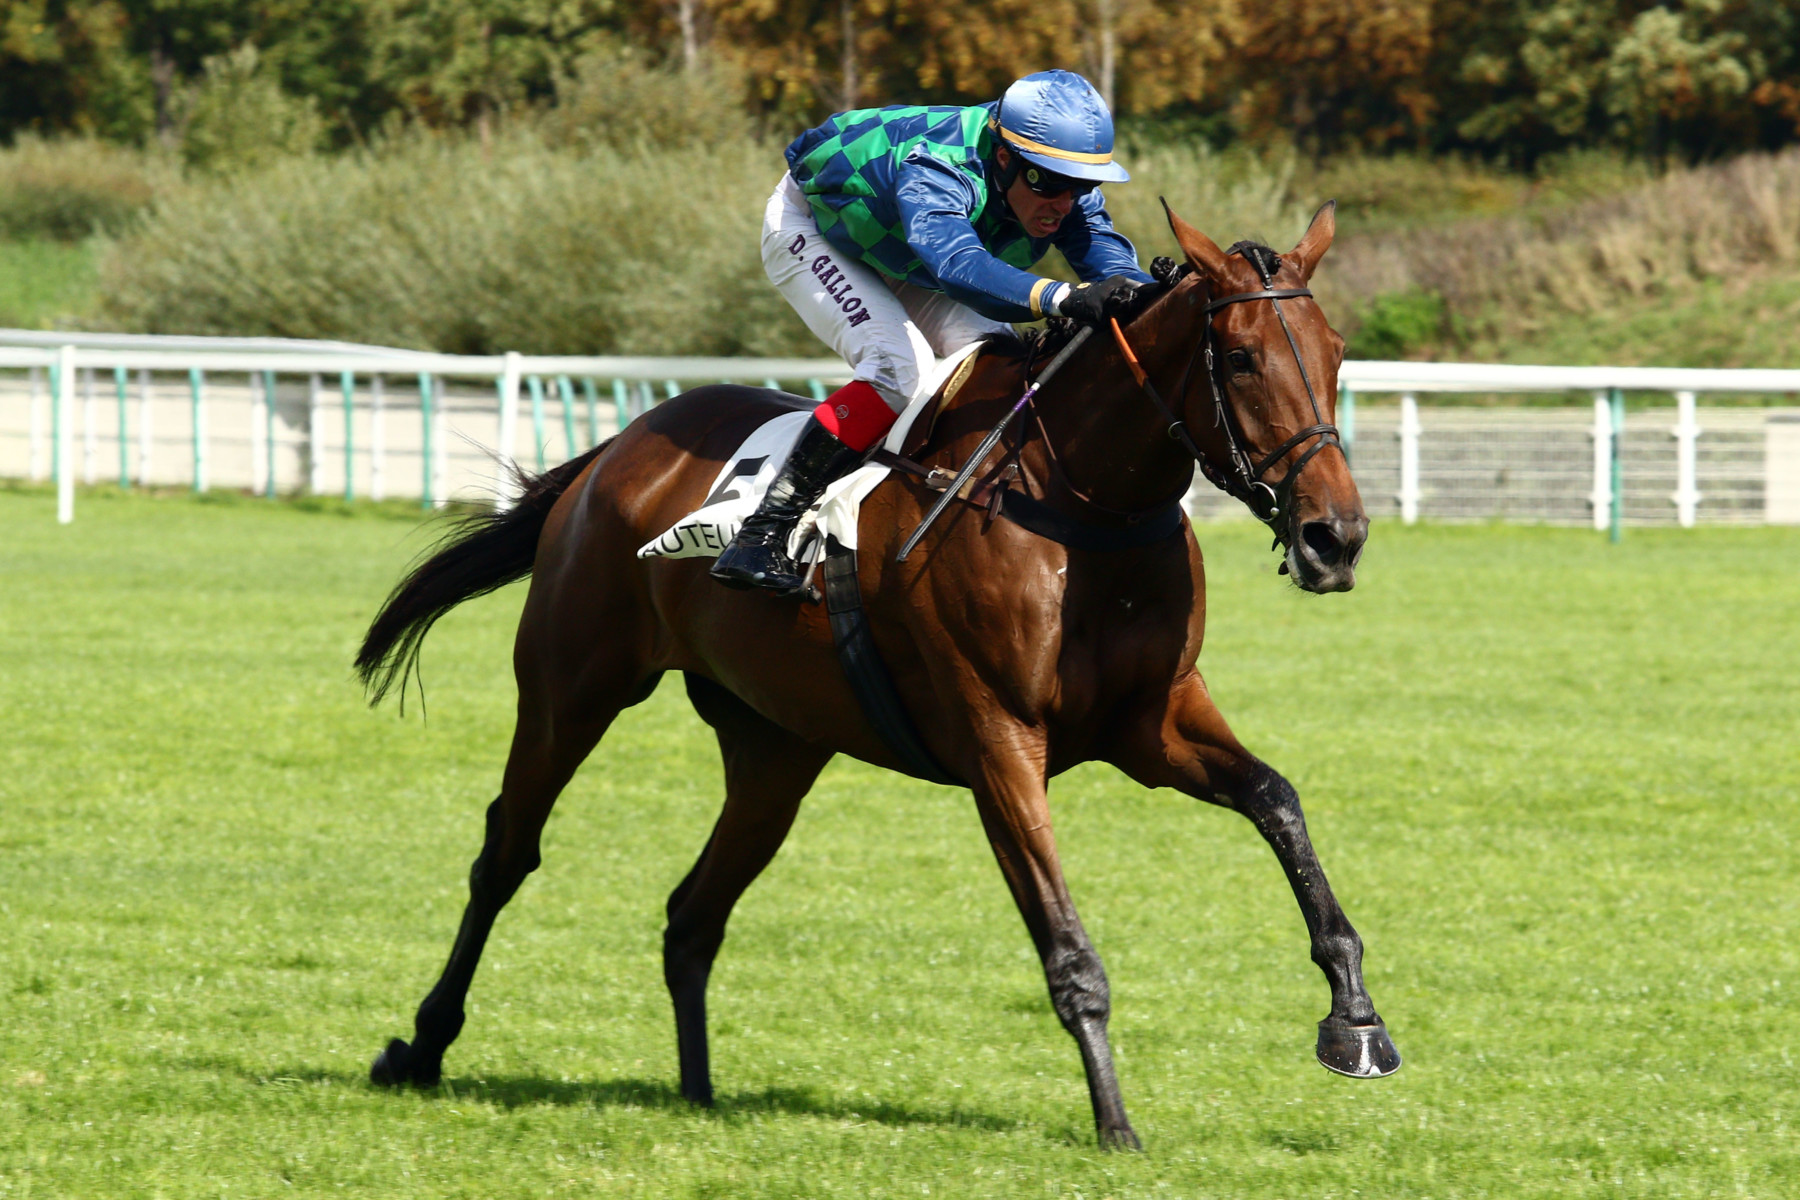 PRIX THE FELLOW - PRIX EDMOND BARRACHIN (GR3) - Dalia Grandchamp, la gazelle d'Auteuil